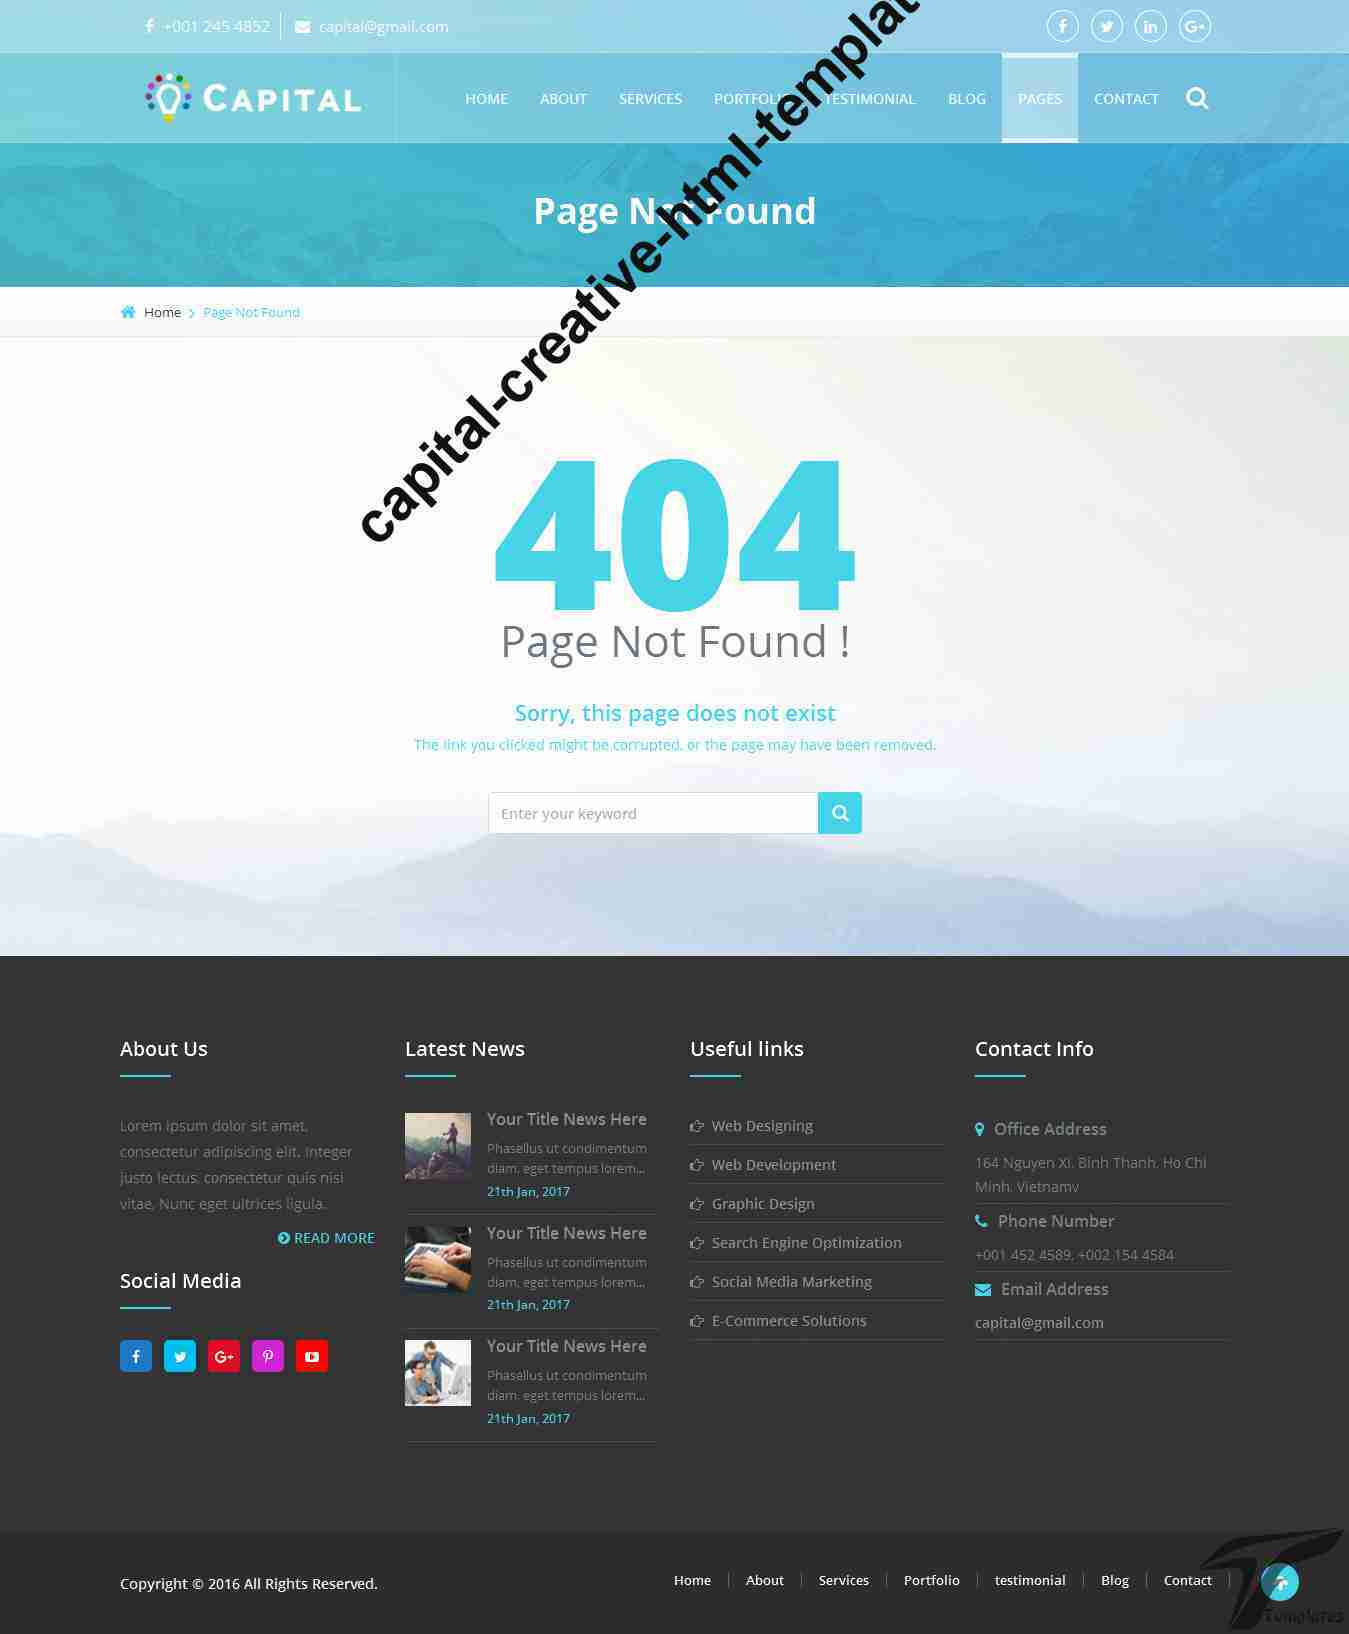 https://images.besthemes.com/images/h1_capital-creative-html-template14-_-205260579/Theme-s20s-Preview/09_404-Page-not-found.png